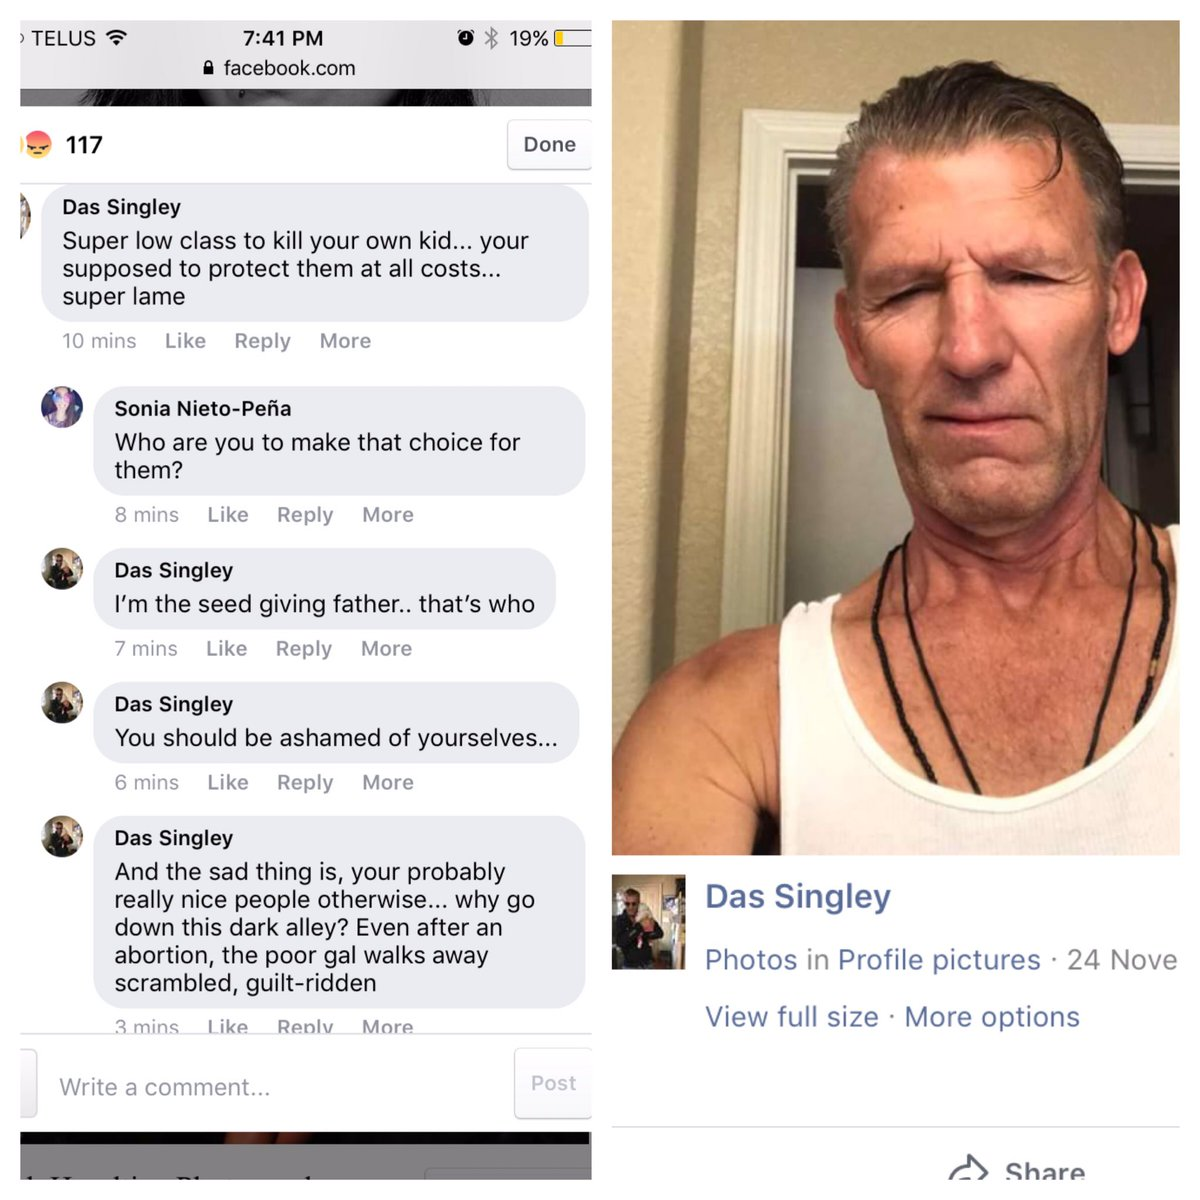 """Facebook is a goldmine! Meet Das Singley. He is a """"seed giving father."""" 9nsd0pLJmL"""